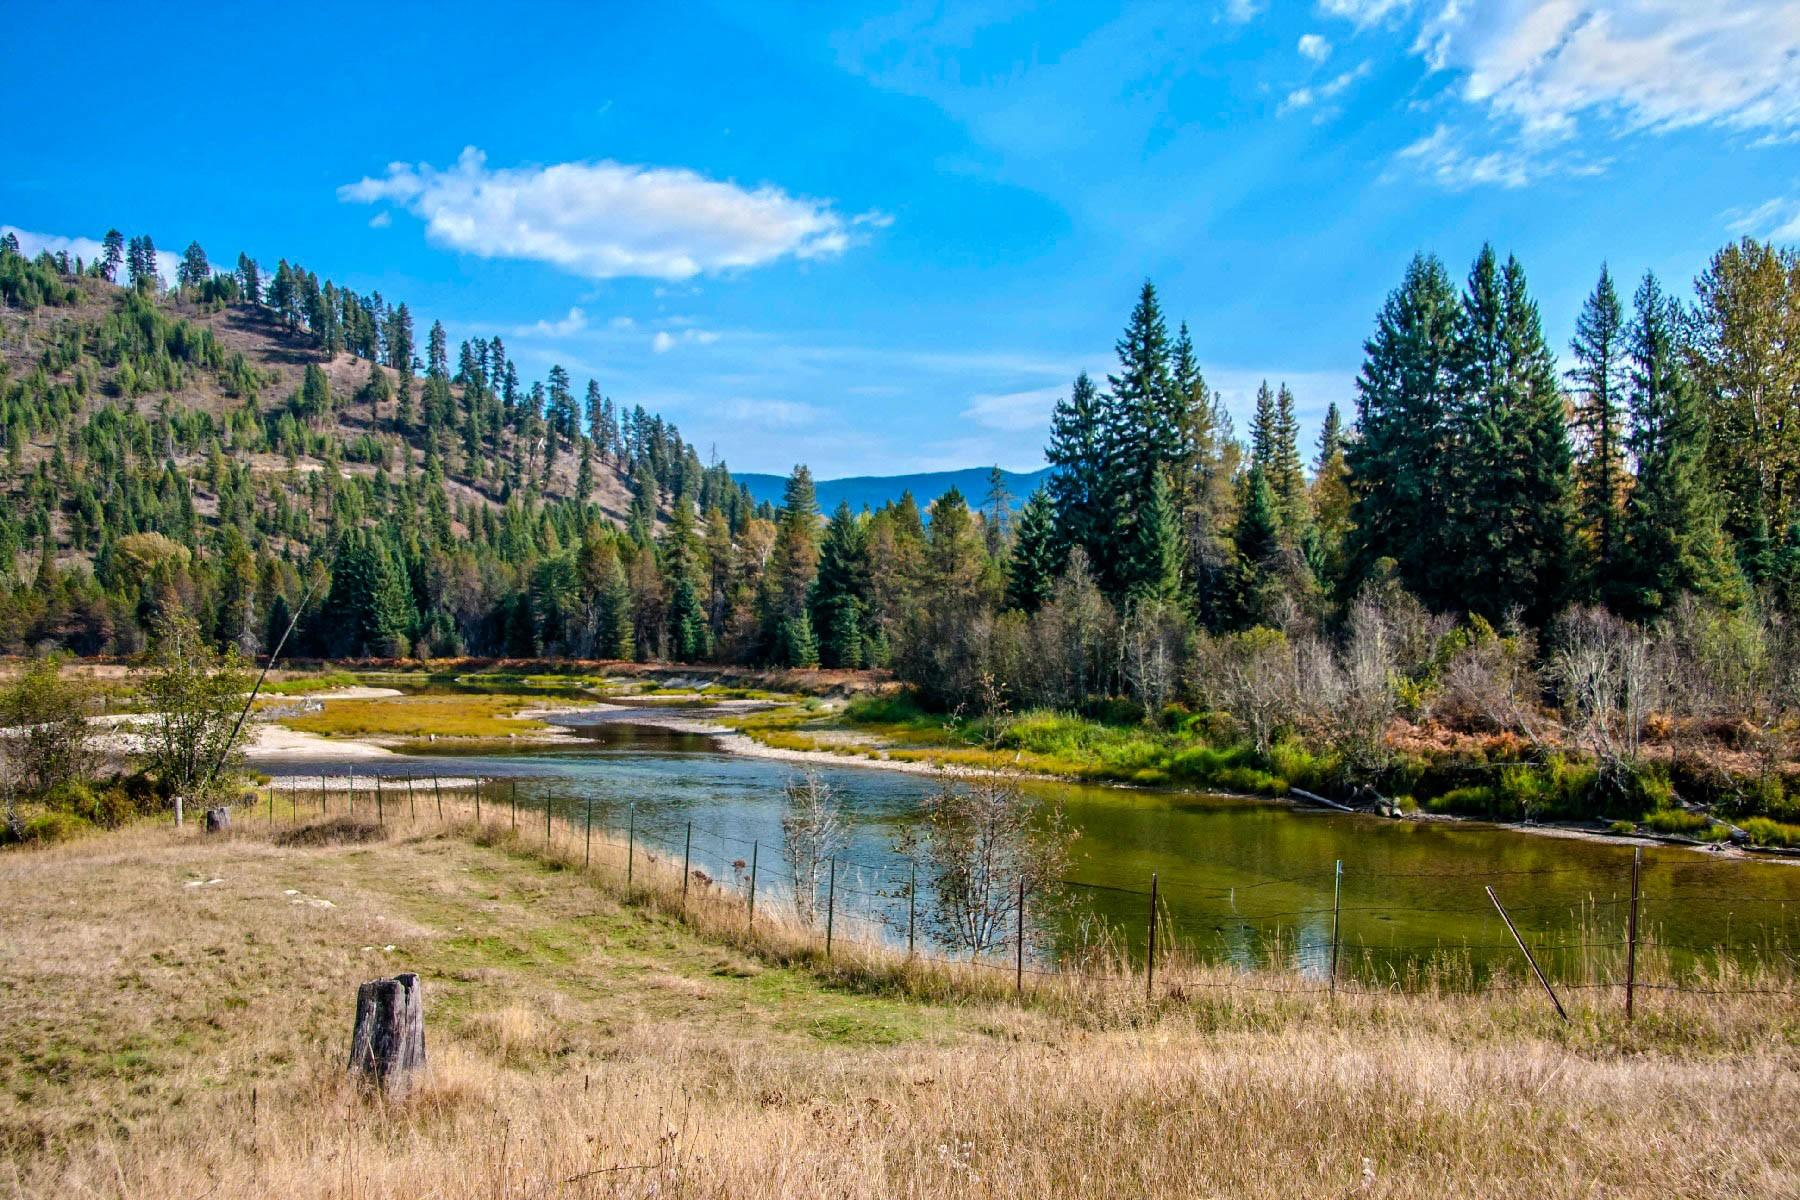 Single Family Home for Sale at Hangumhi Ranch 4827 Gleason McAbee Falls Rd Priest River, Idaho 83856 United States